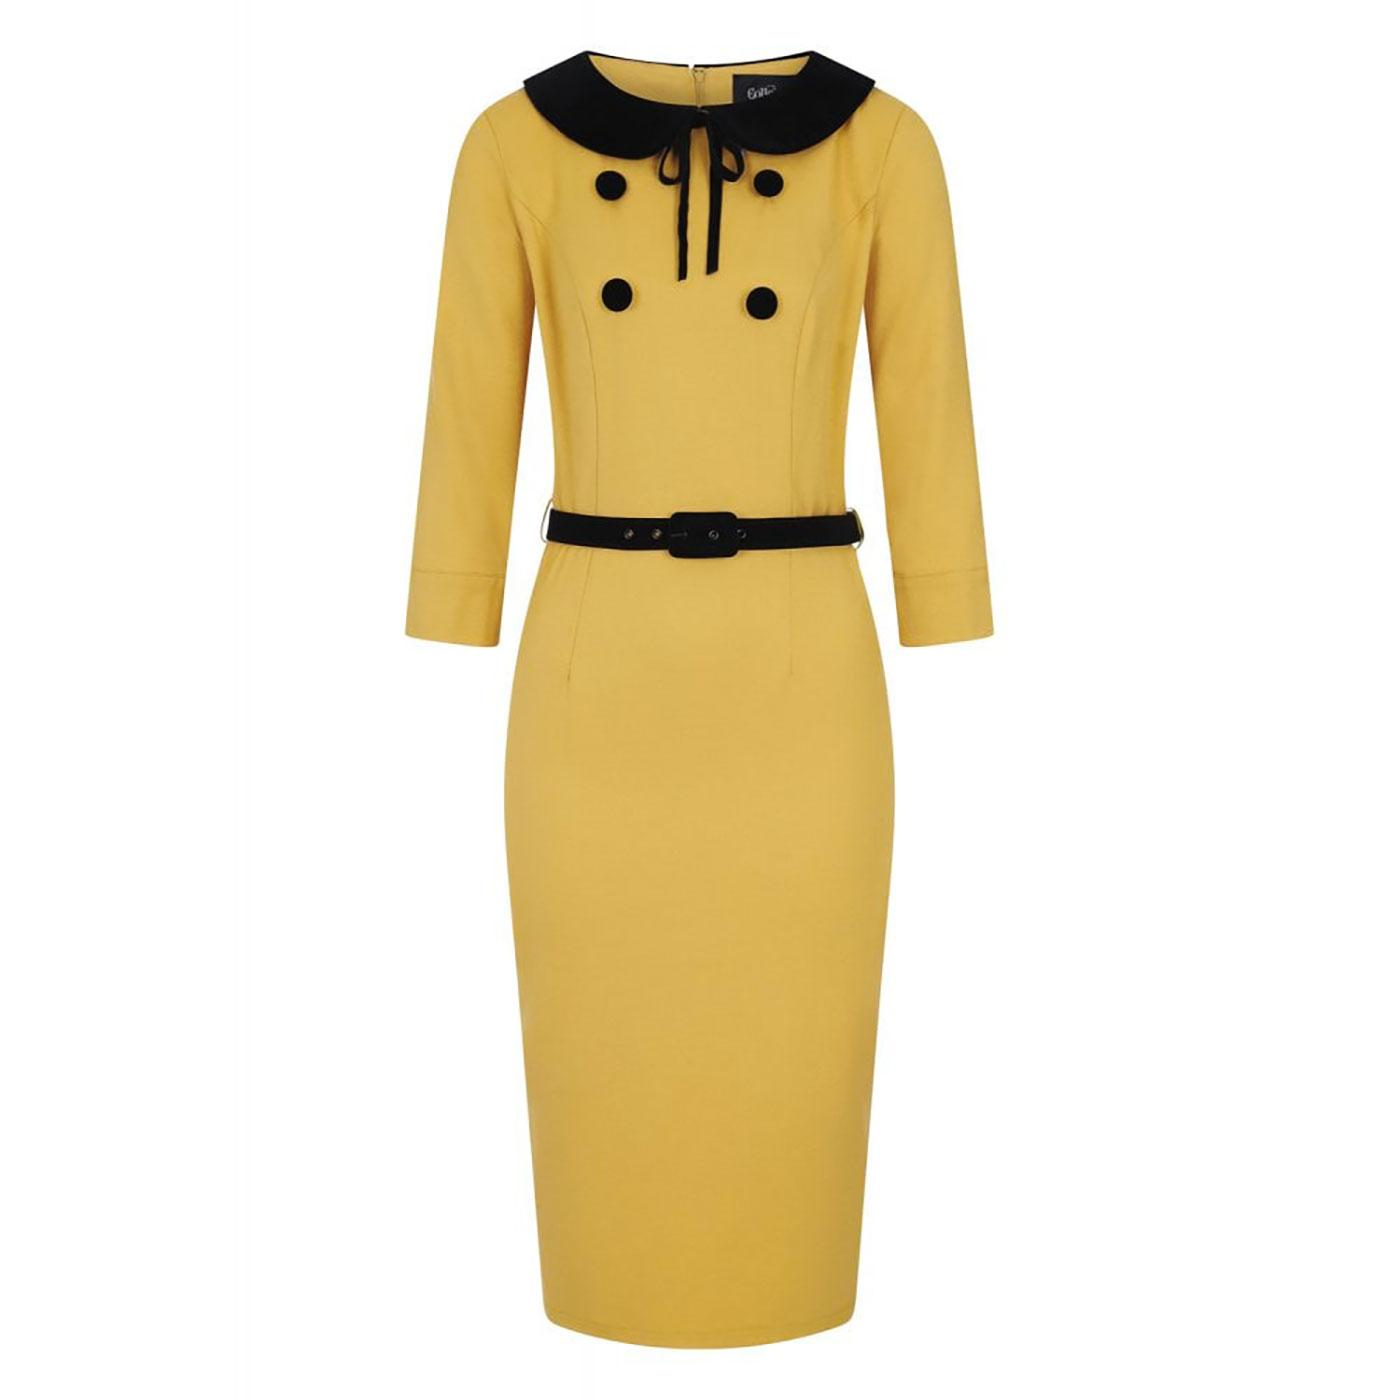 Christine COLLECTIF 1950s Pencil Dress In Mustard